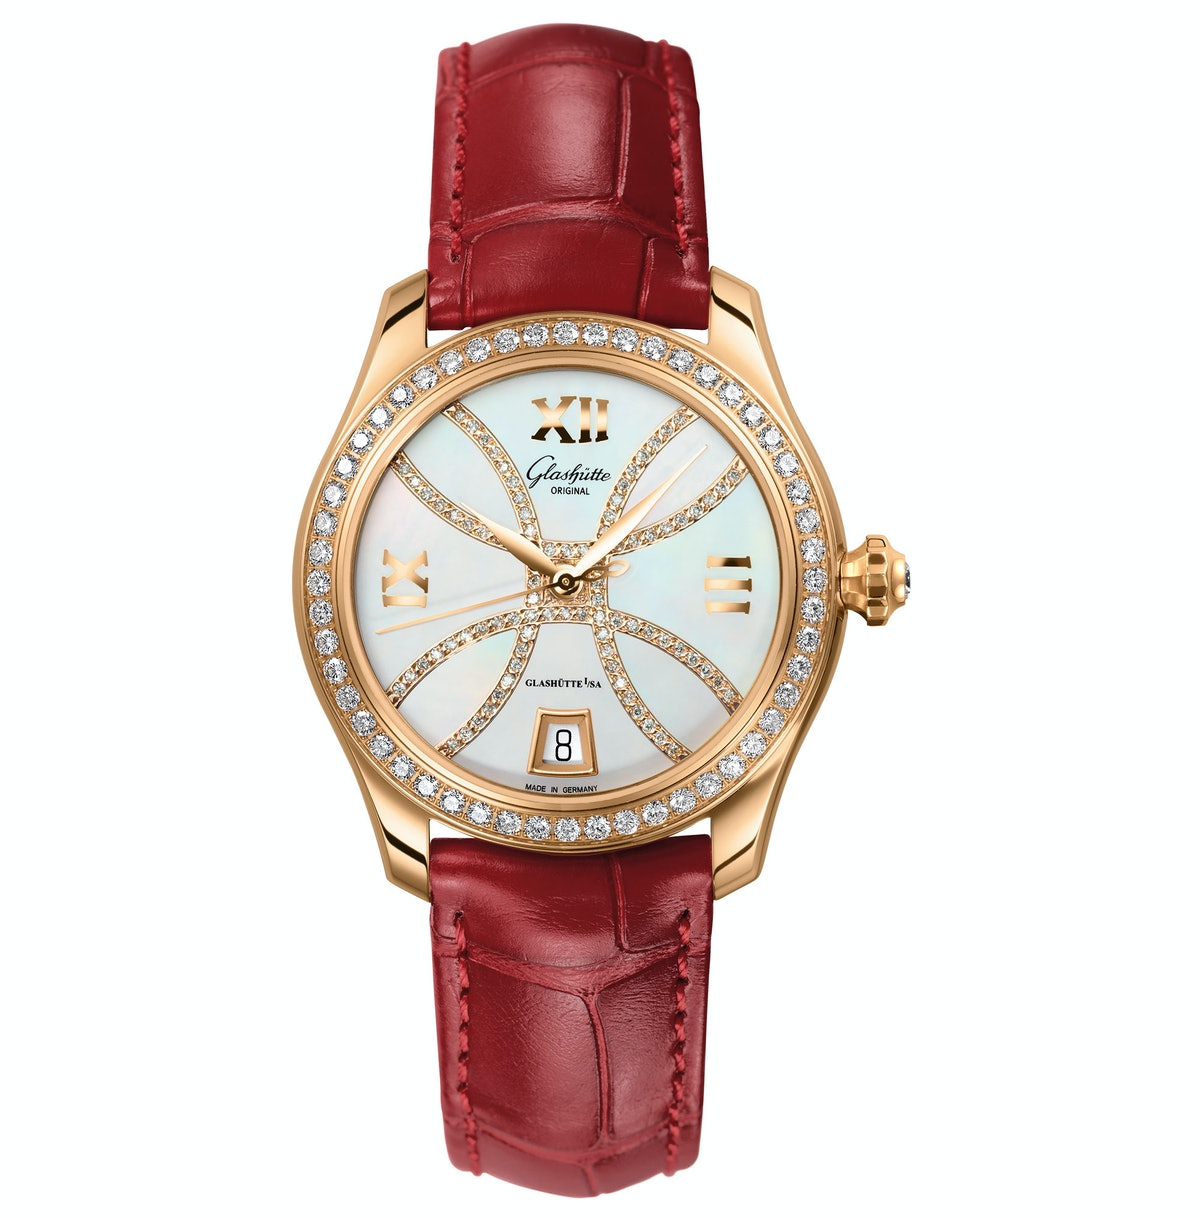 Glashütte Original gold, mother-of-pearl, and diamond watch